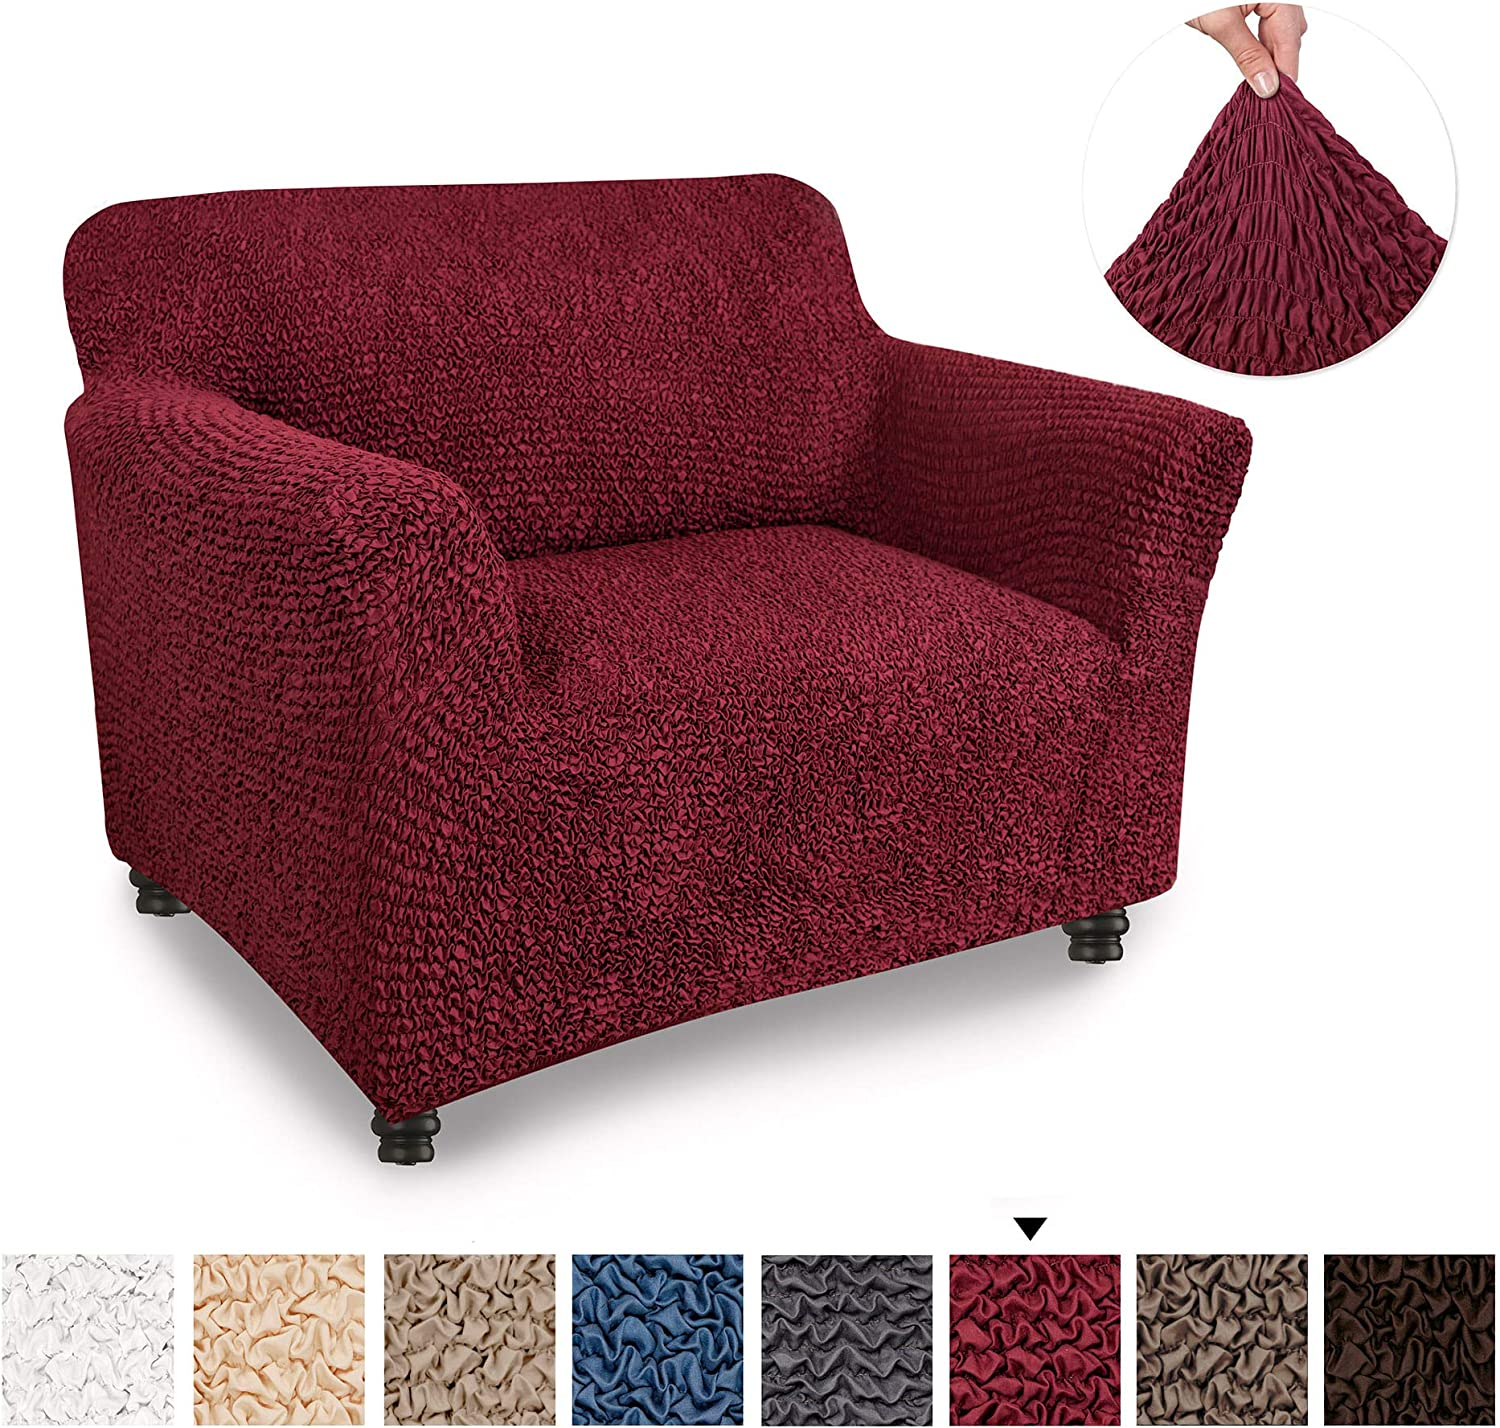 Chair Cover Armchair Cover Armchair Slipcover Soft Polyester Fabric Slipcover 1 piece Form Fit Stretch Stylish Furniture Protector